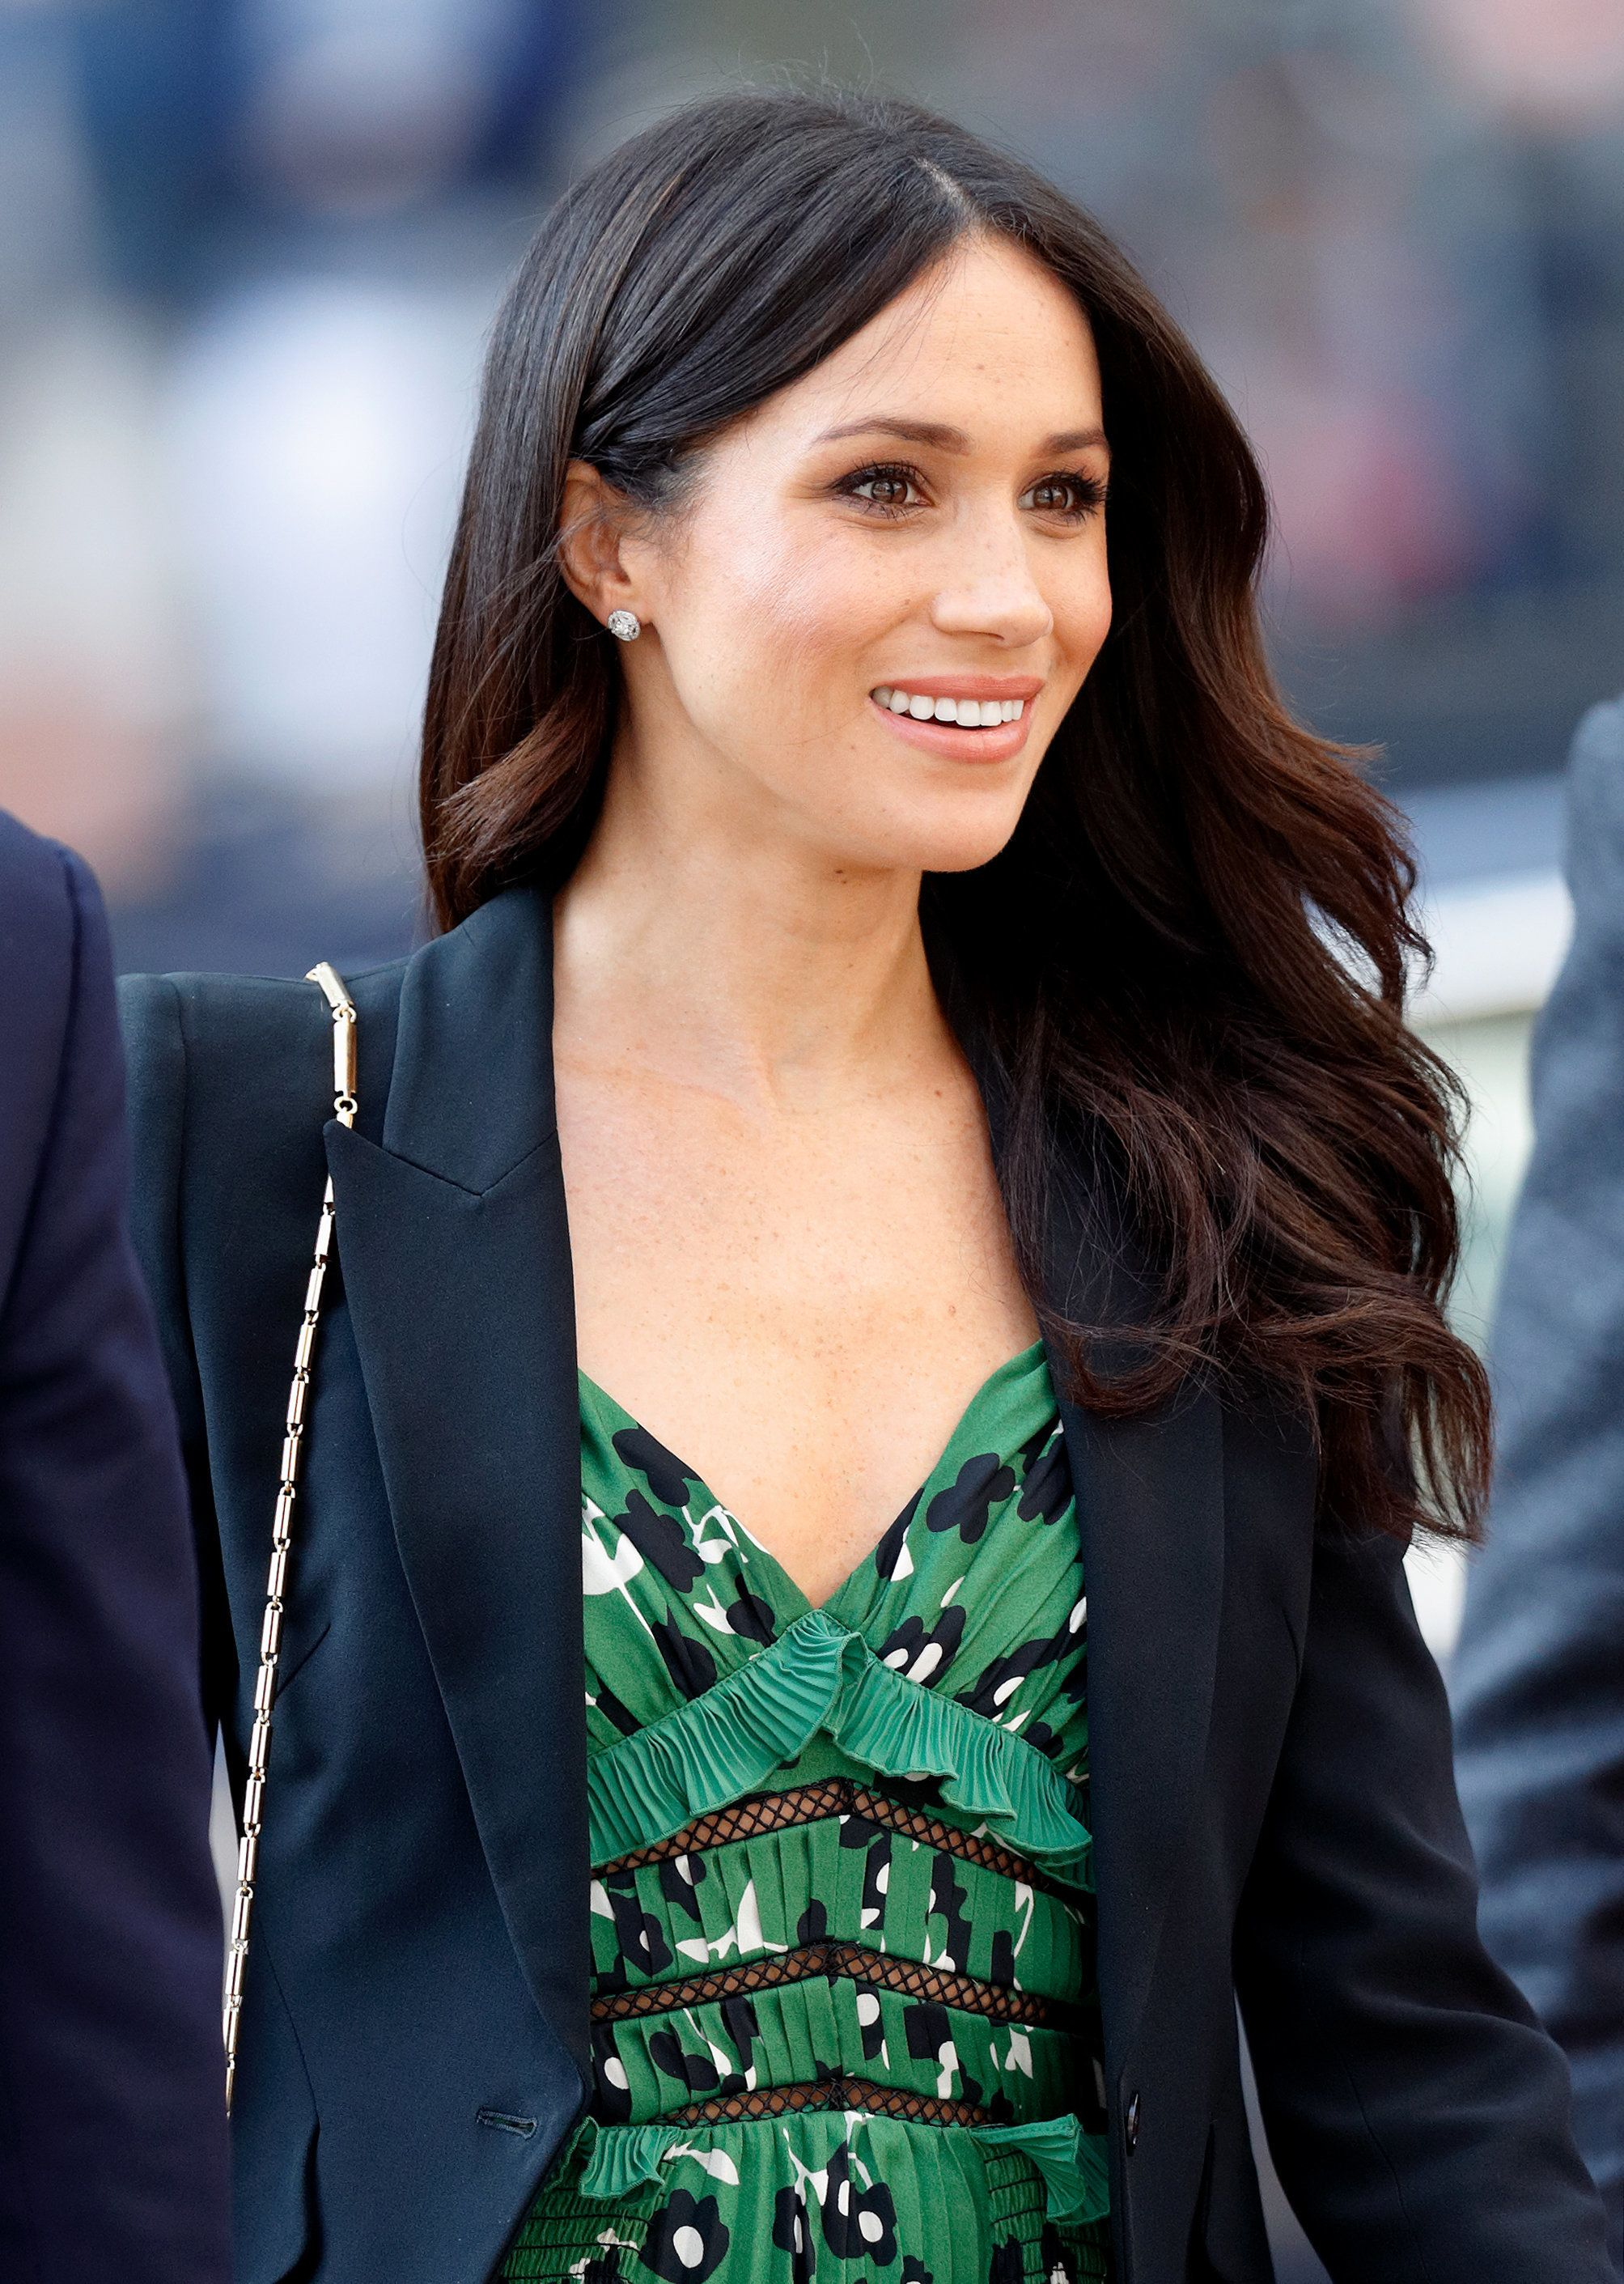 The Internet's Most Burning Questions About Meghan Markle, Answered